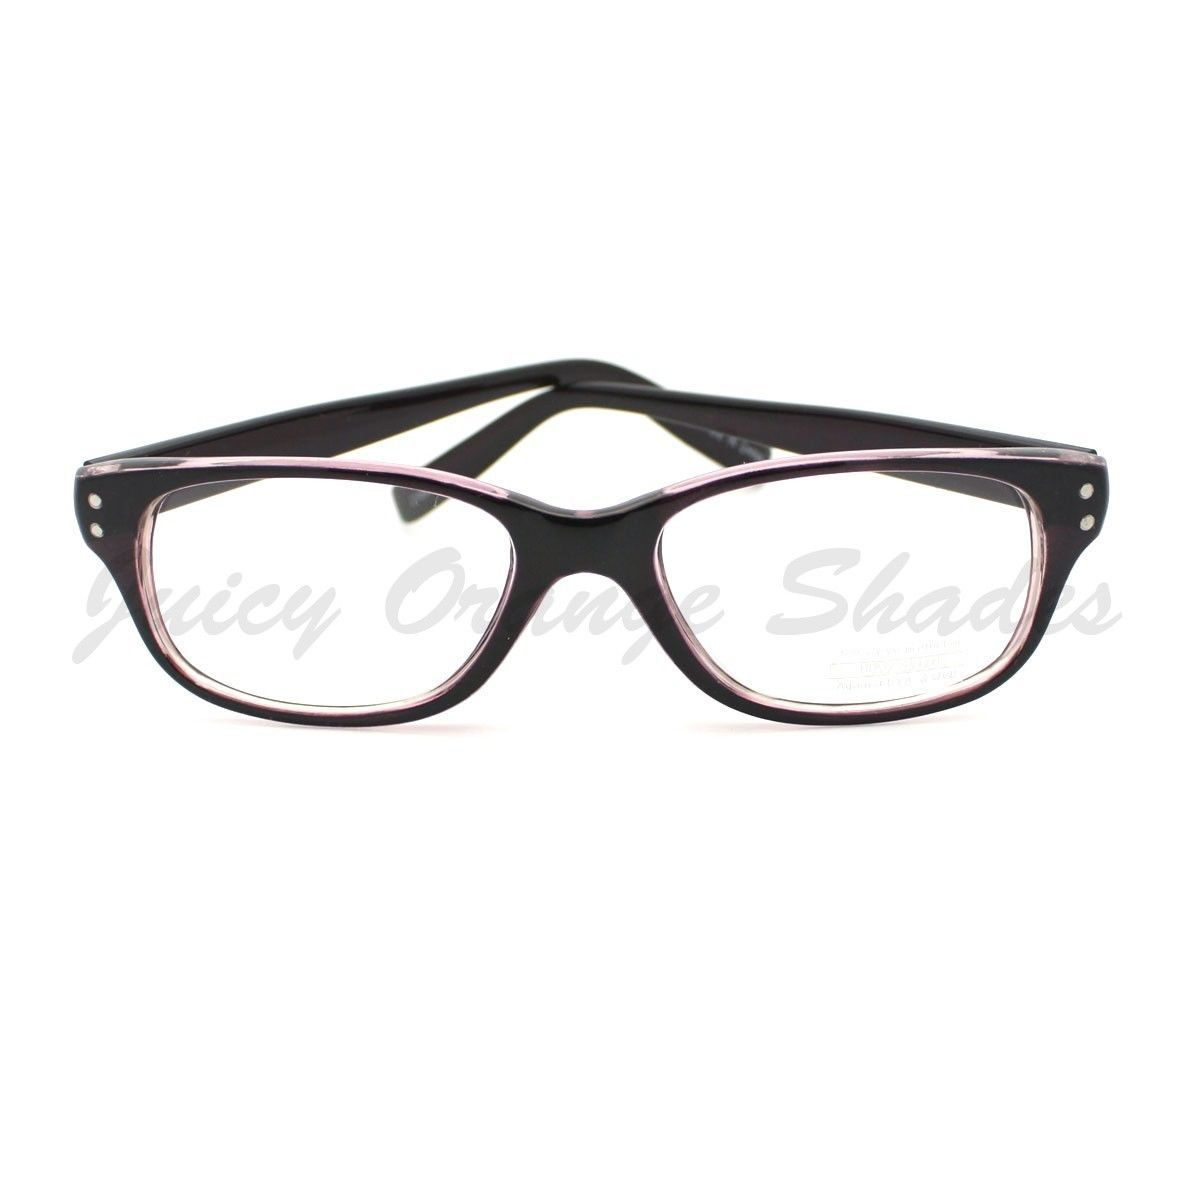 Clear Lens Eyeglasses Rectangular Short Horn Rim 2-Tone PURPLE